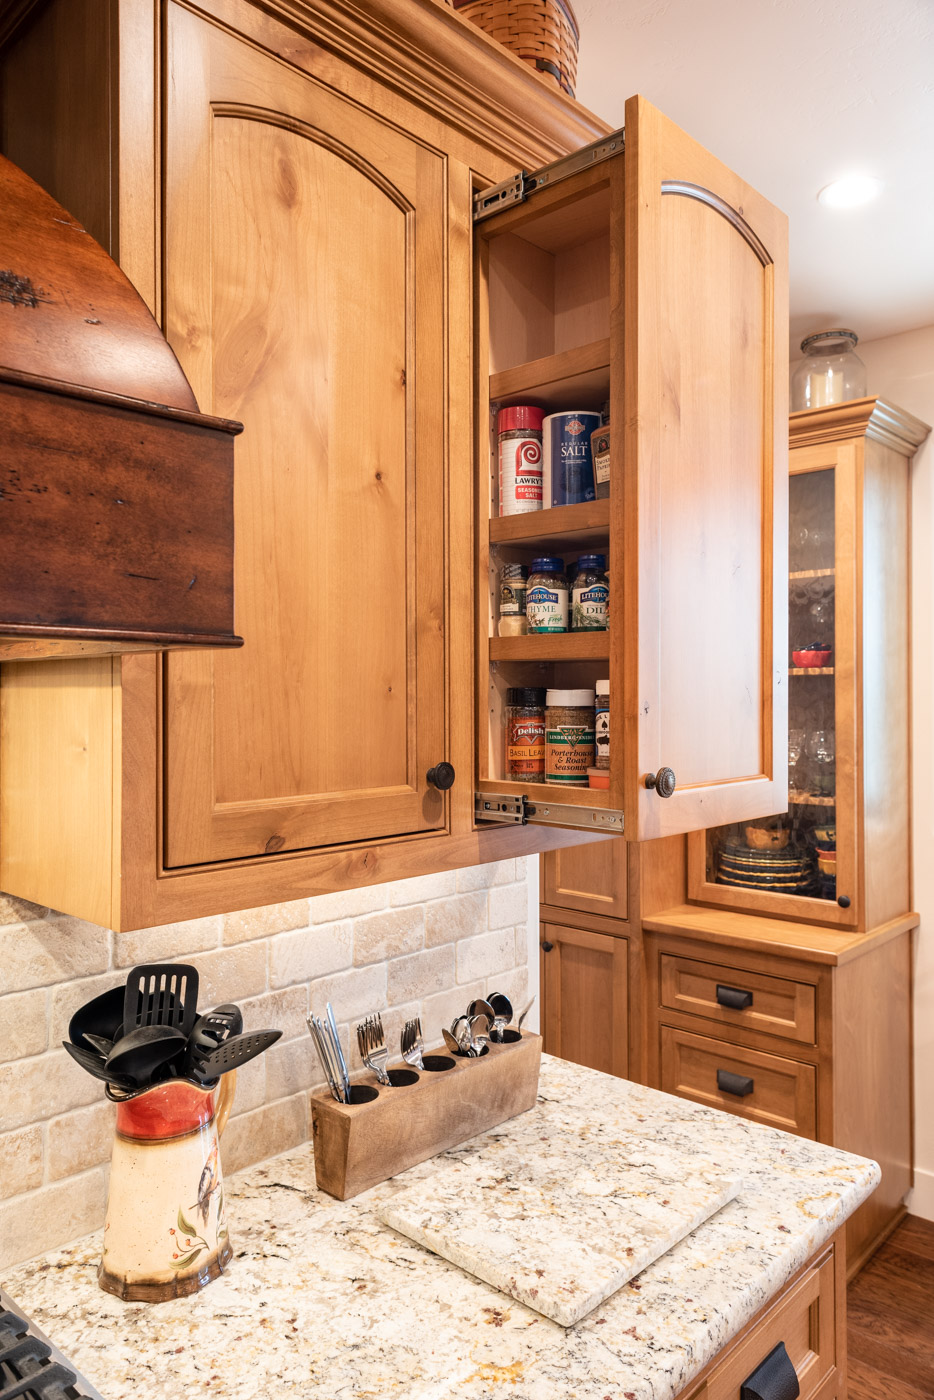 Tuscan Artisan custom stained Alder wood kitchen cabinet spice storage